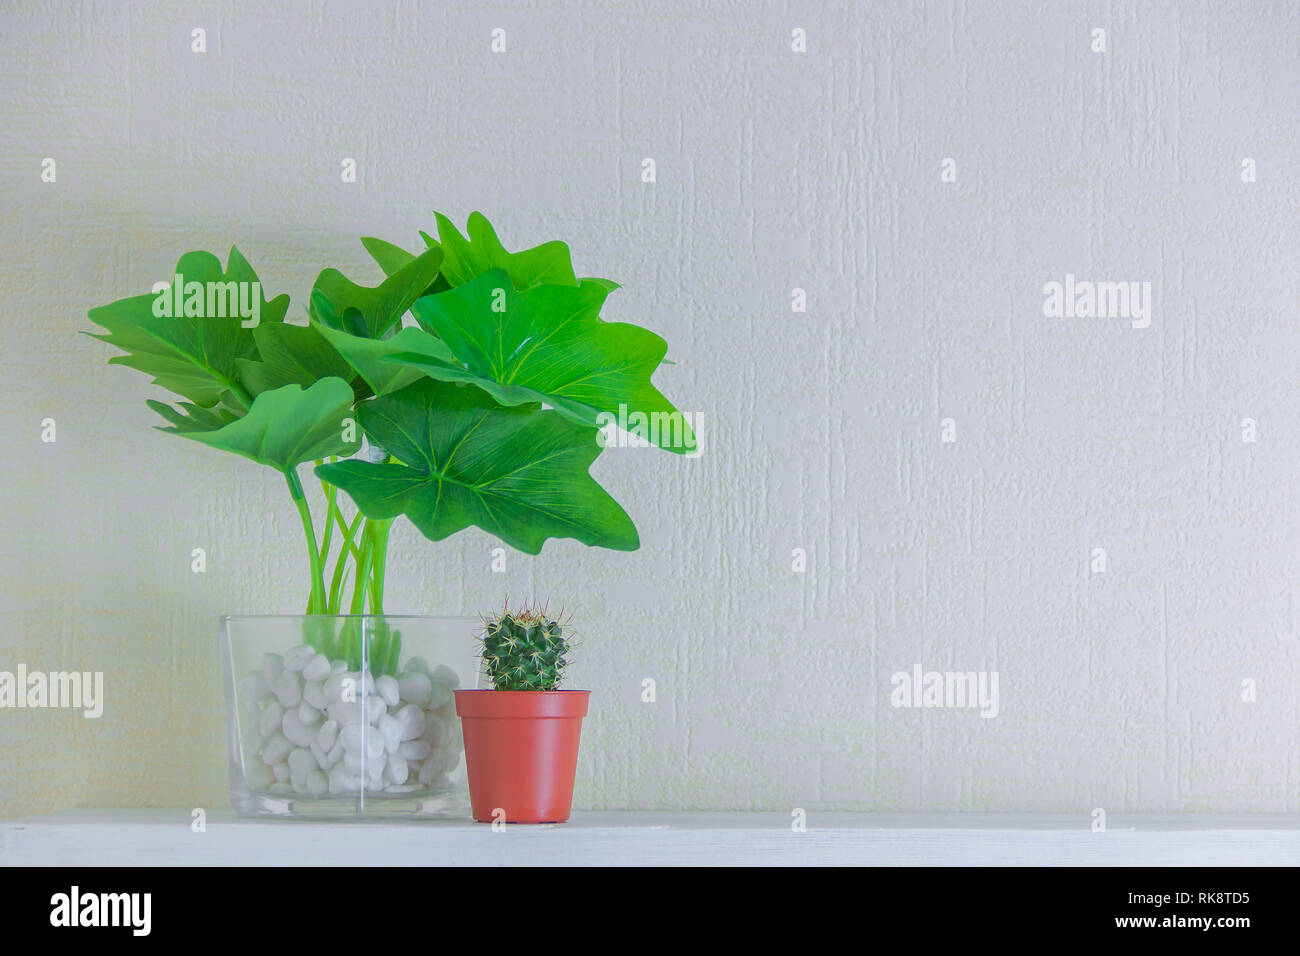 Houseplant And Cactus In Cute Pots On Wooden Shelf On White Wall